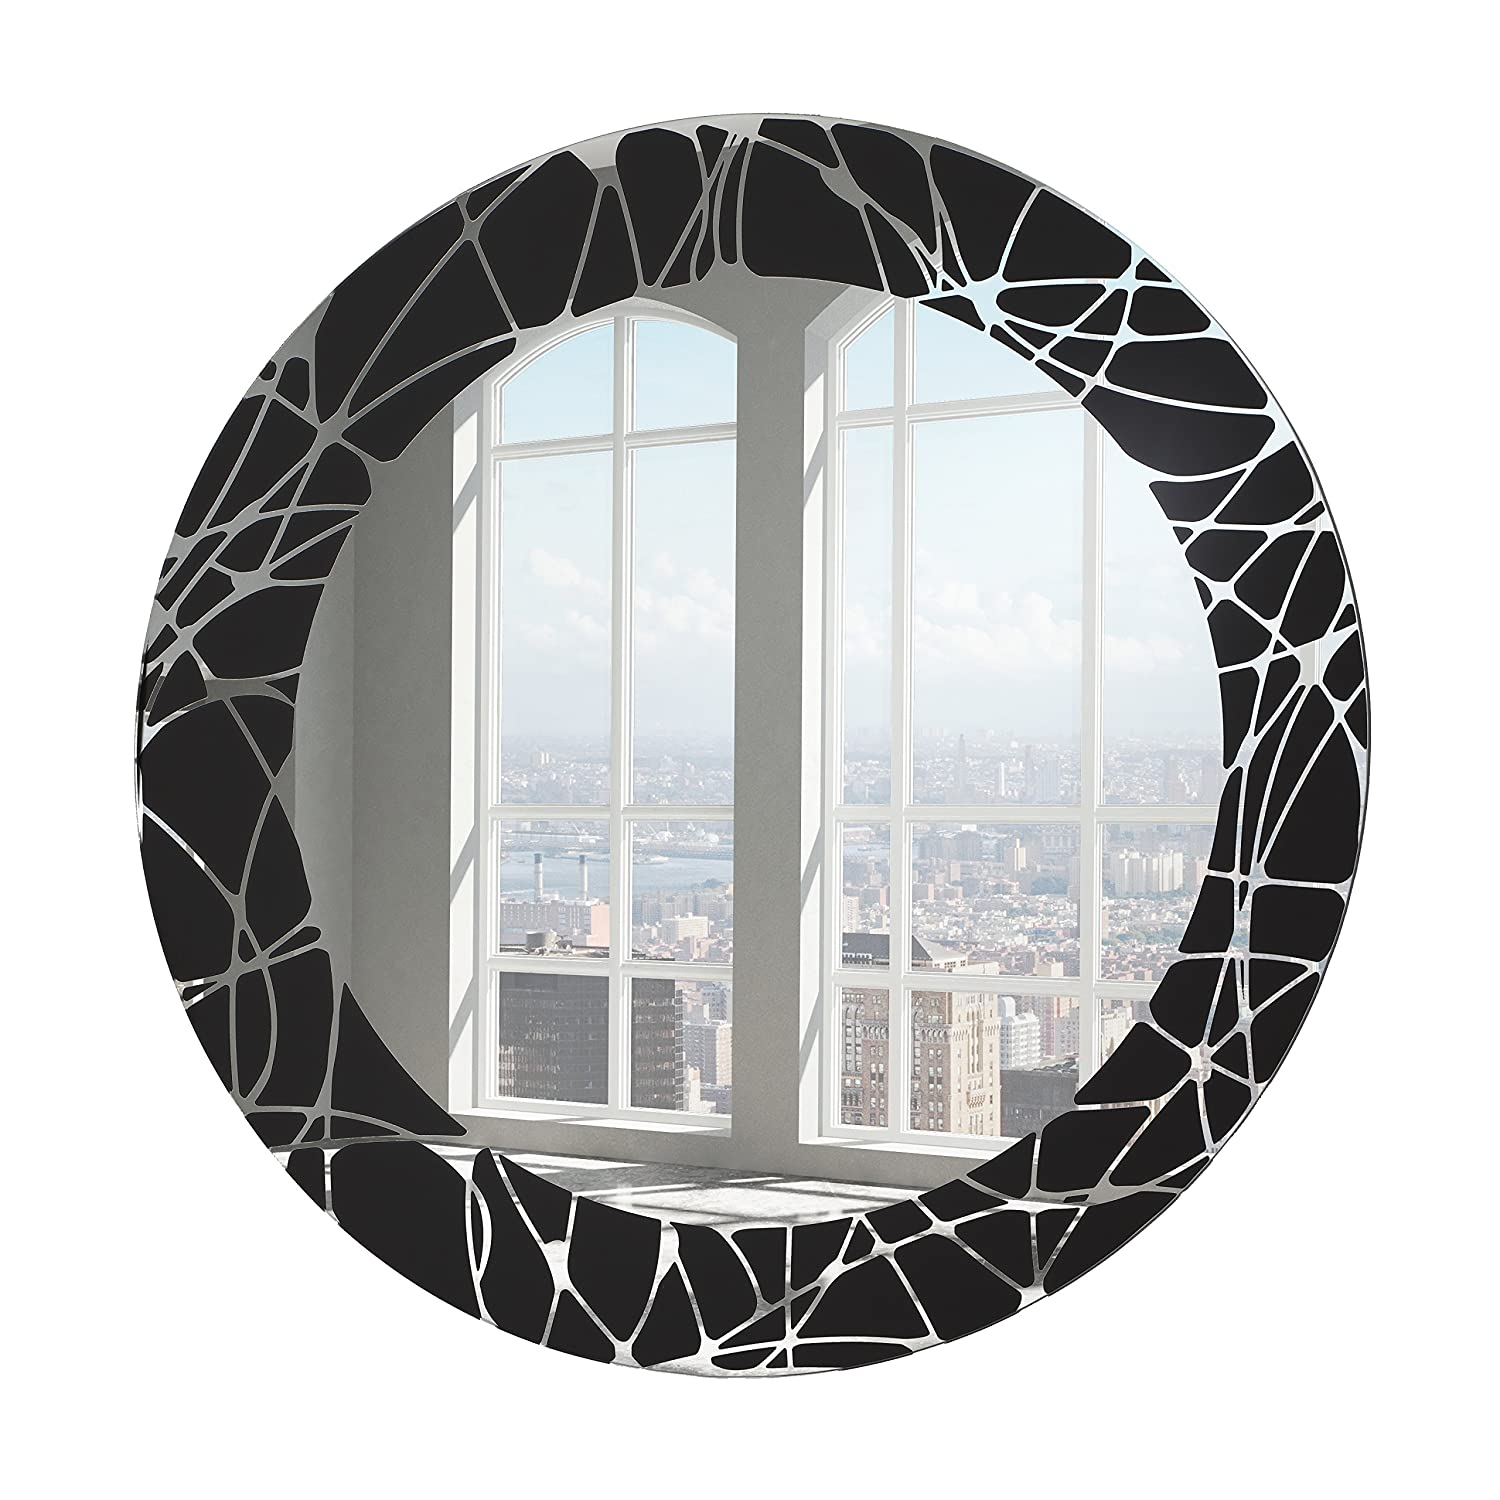 Buy Breeze Point M00162 24 Diam Round Beveled Frameless Decorative Glass Wall Mirror With Black Abstract Shapes Pattern Border Black Online At Low Prices In India Amazon In